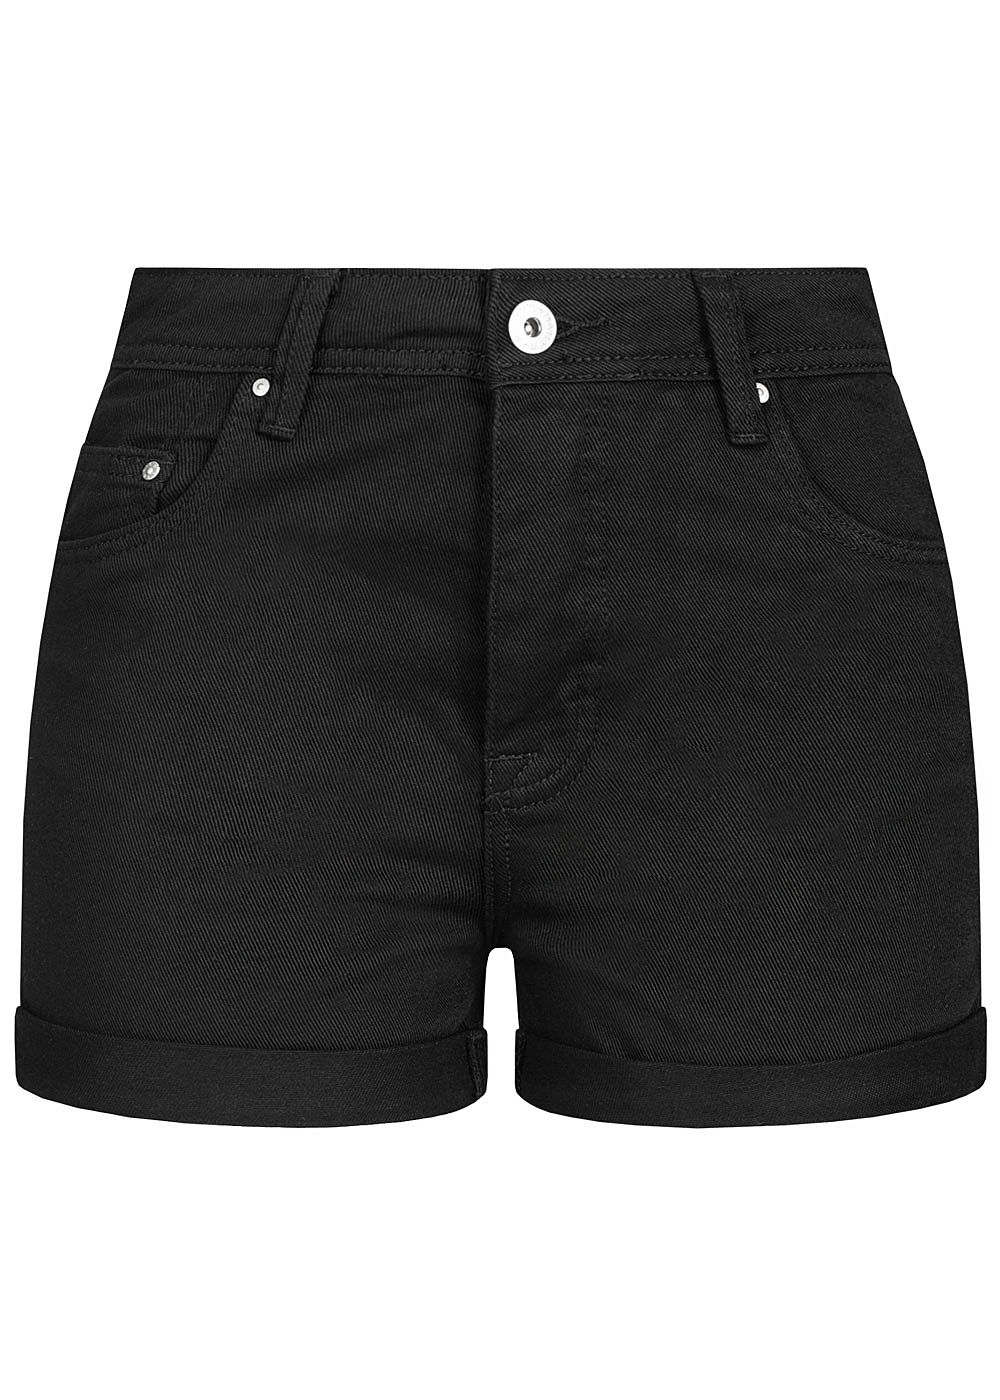 Hailys Damen High Waist Shorts 5-Pockets schwarz - Art.-Nr.: 20052114